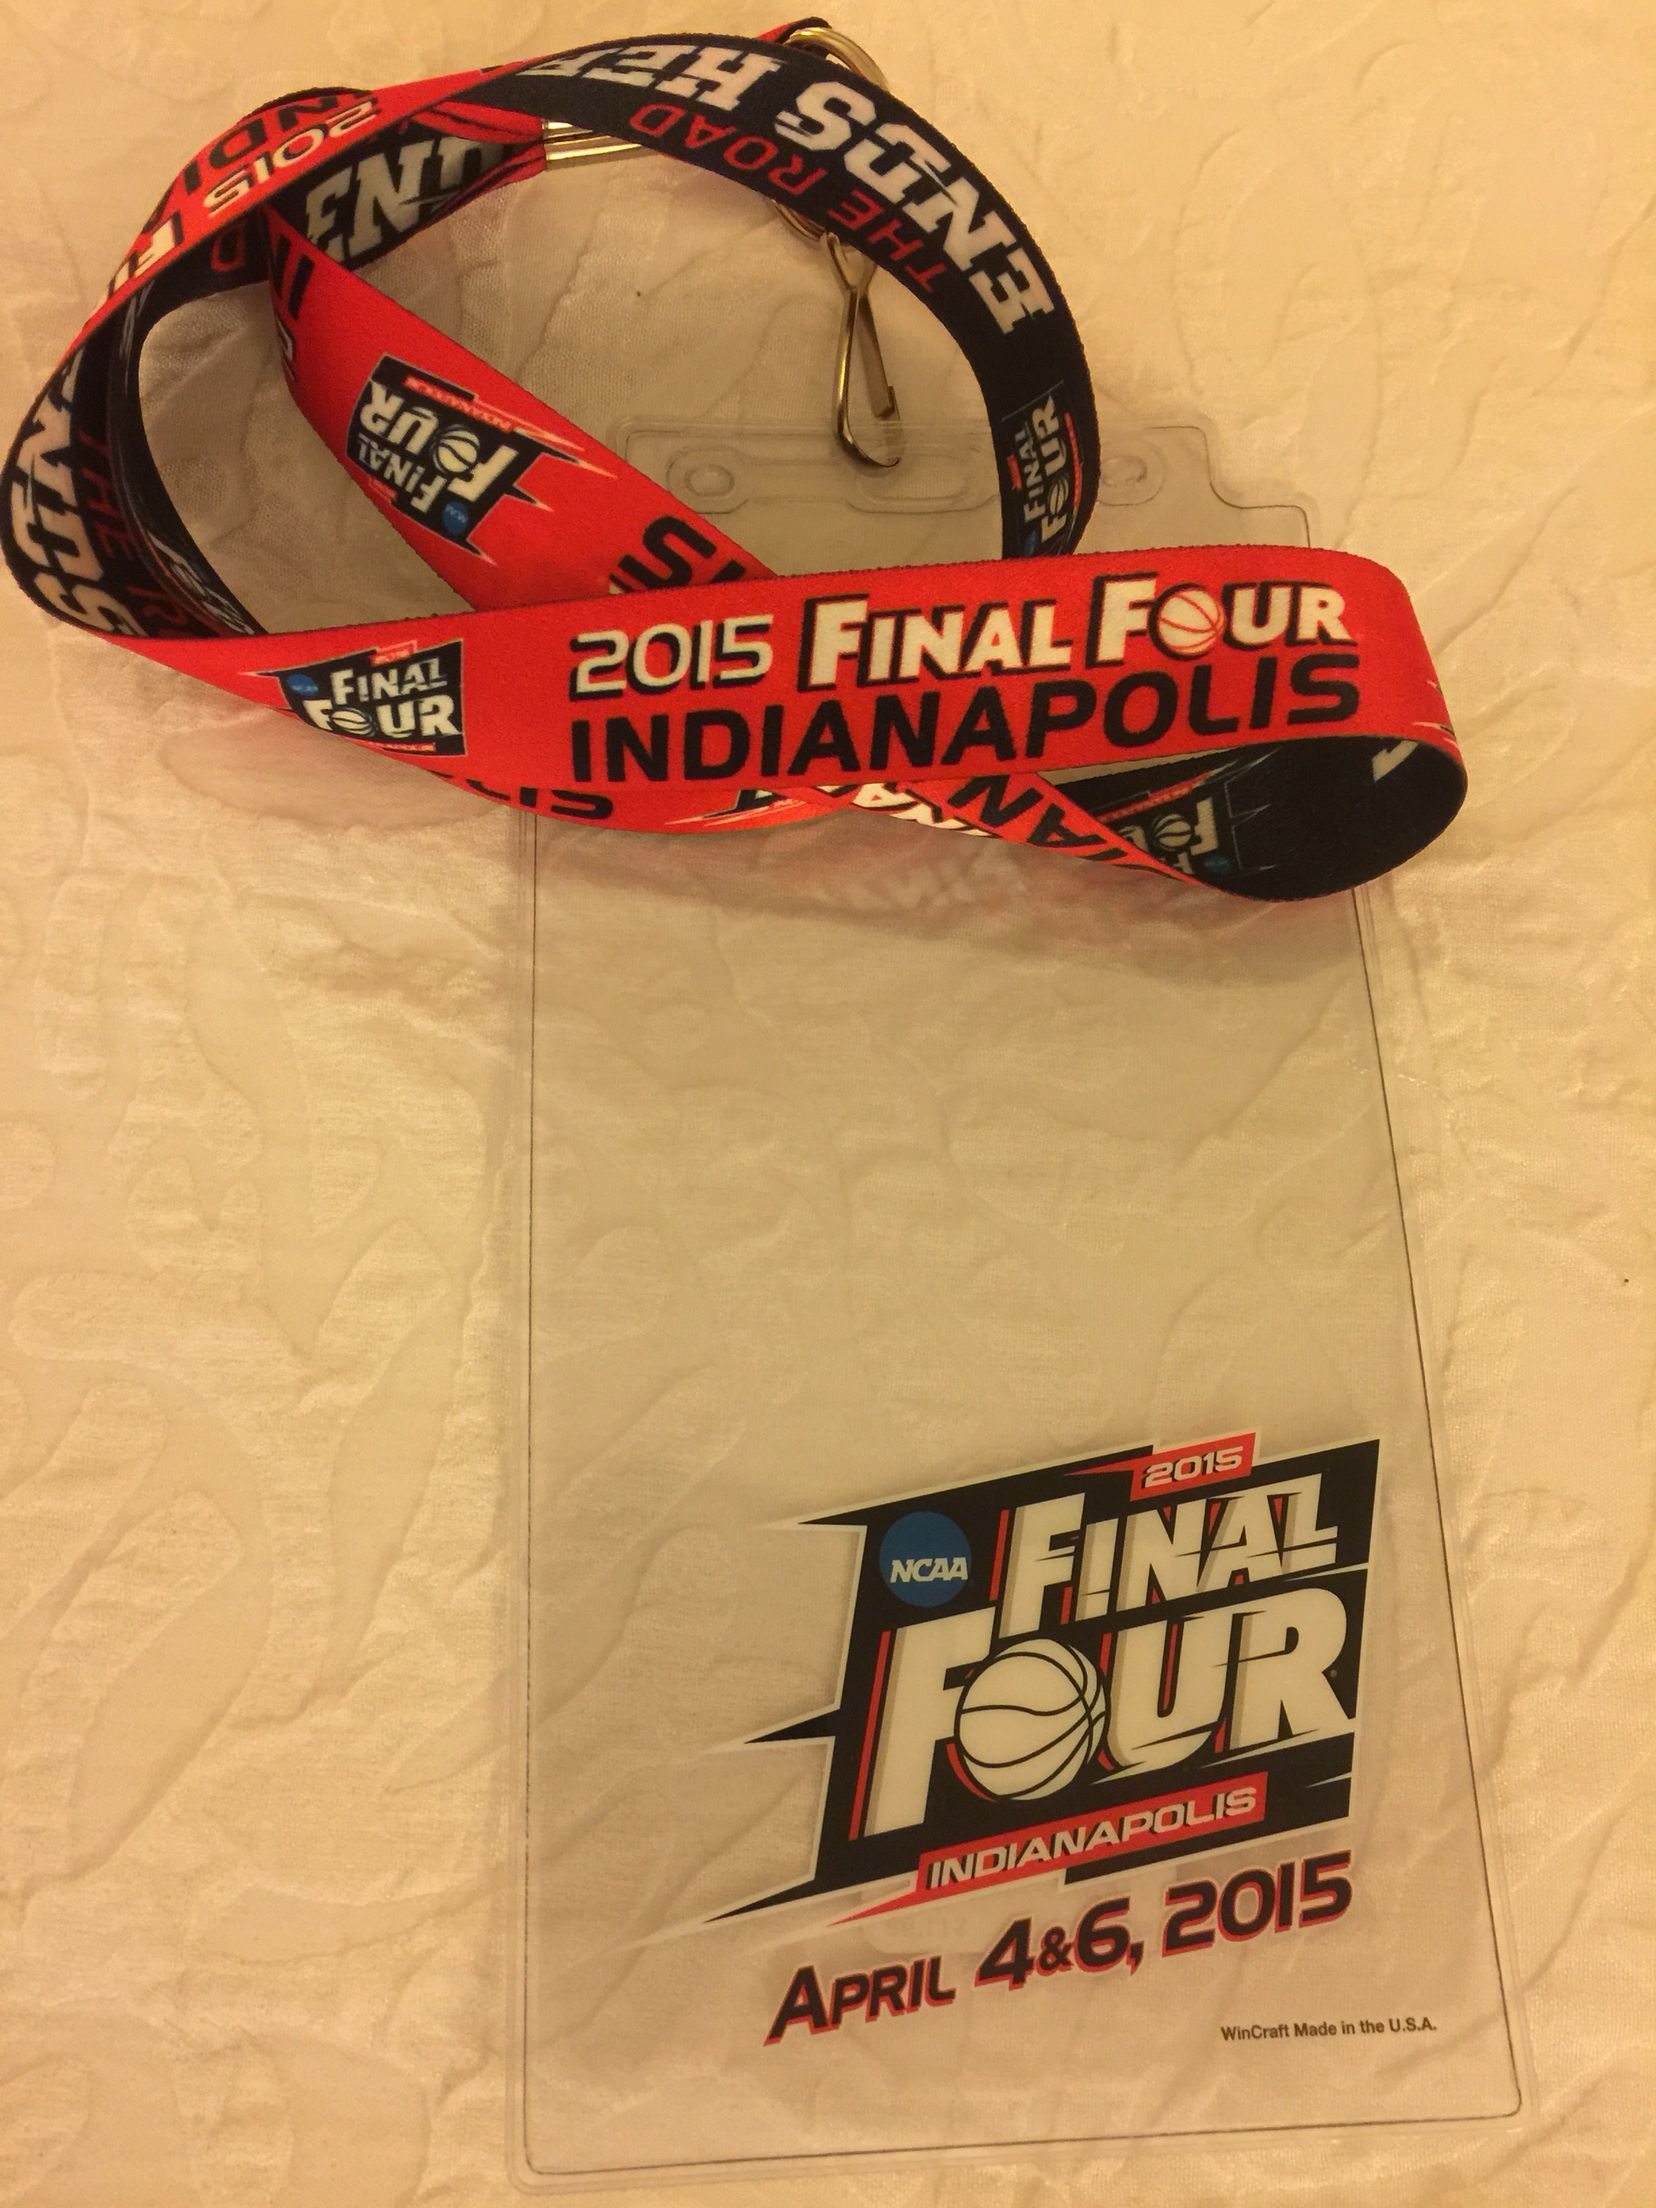 2015 Final Four Indianapolis Lanyard.